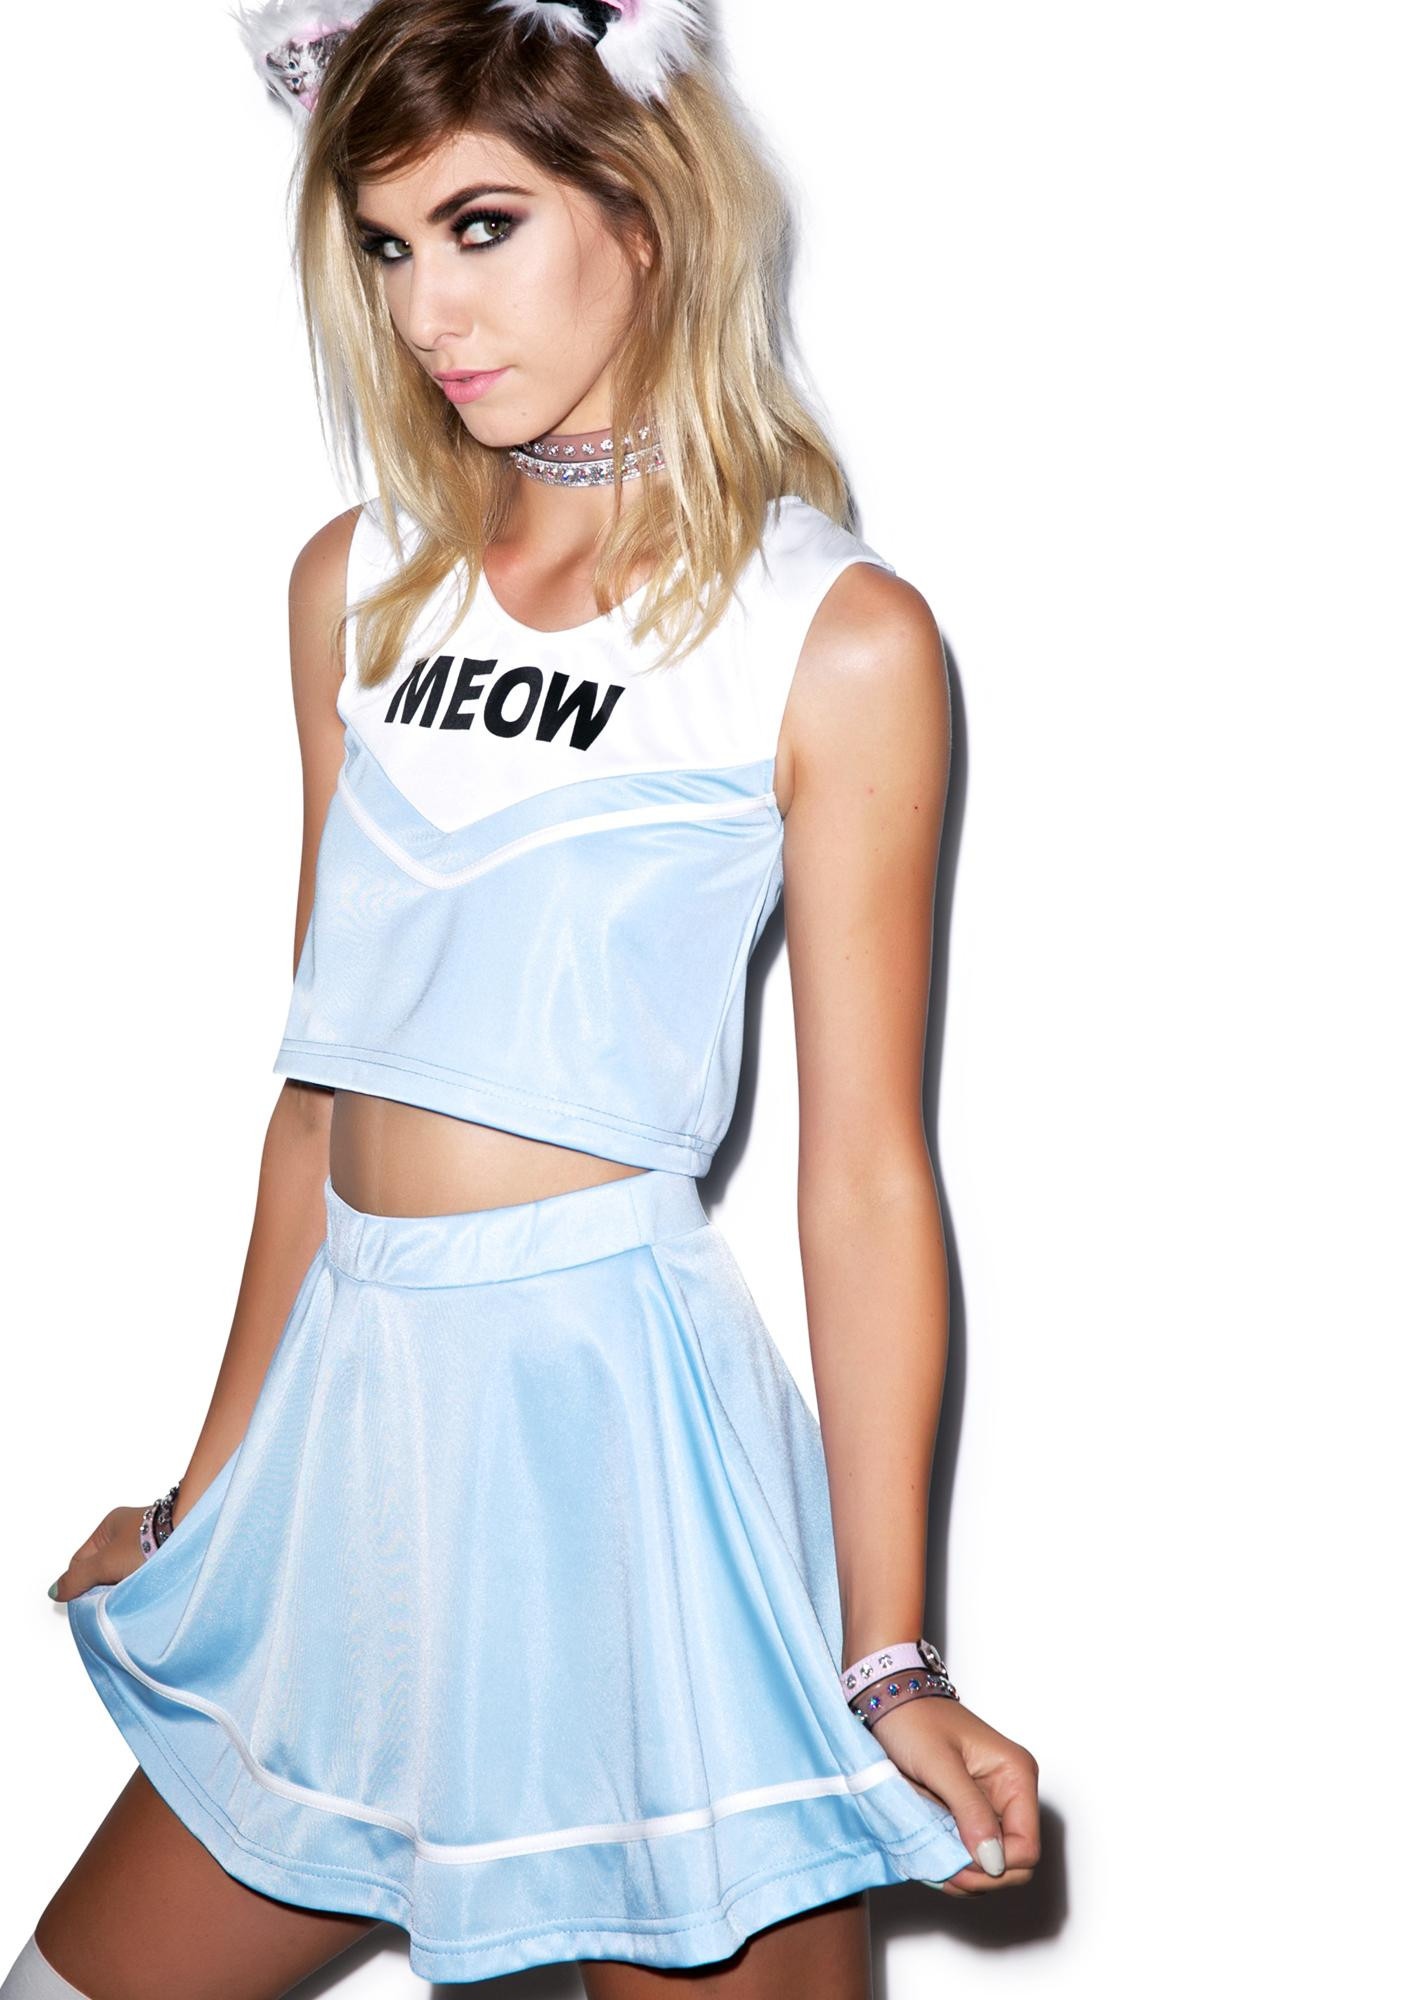 Do Ya Want Meow? Cheerleader Skirt Set